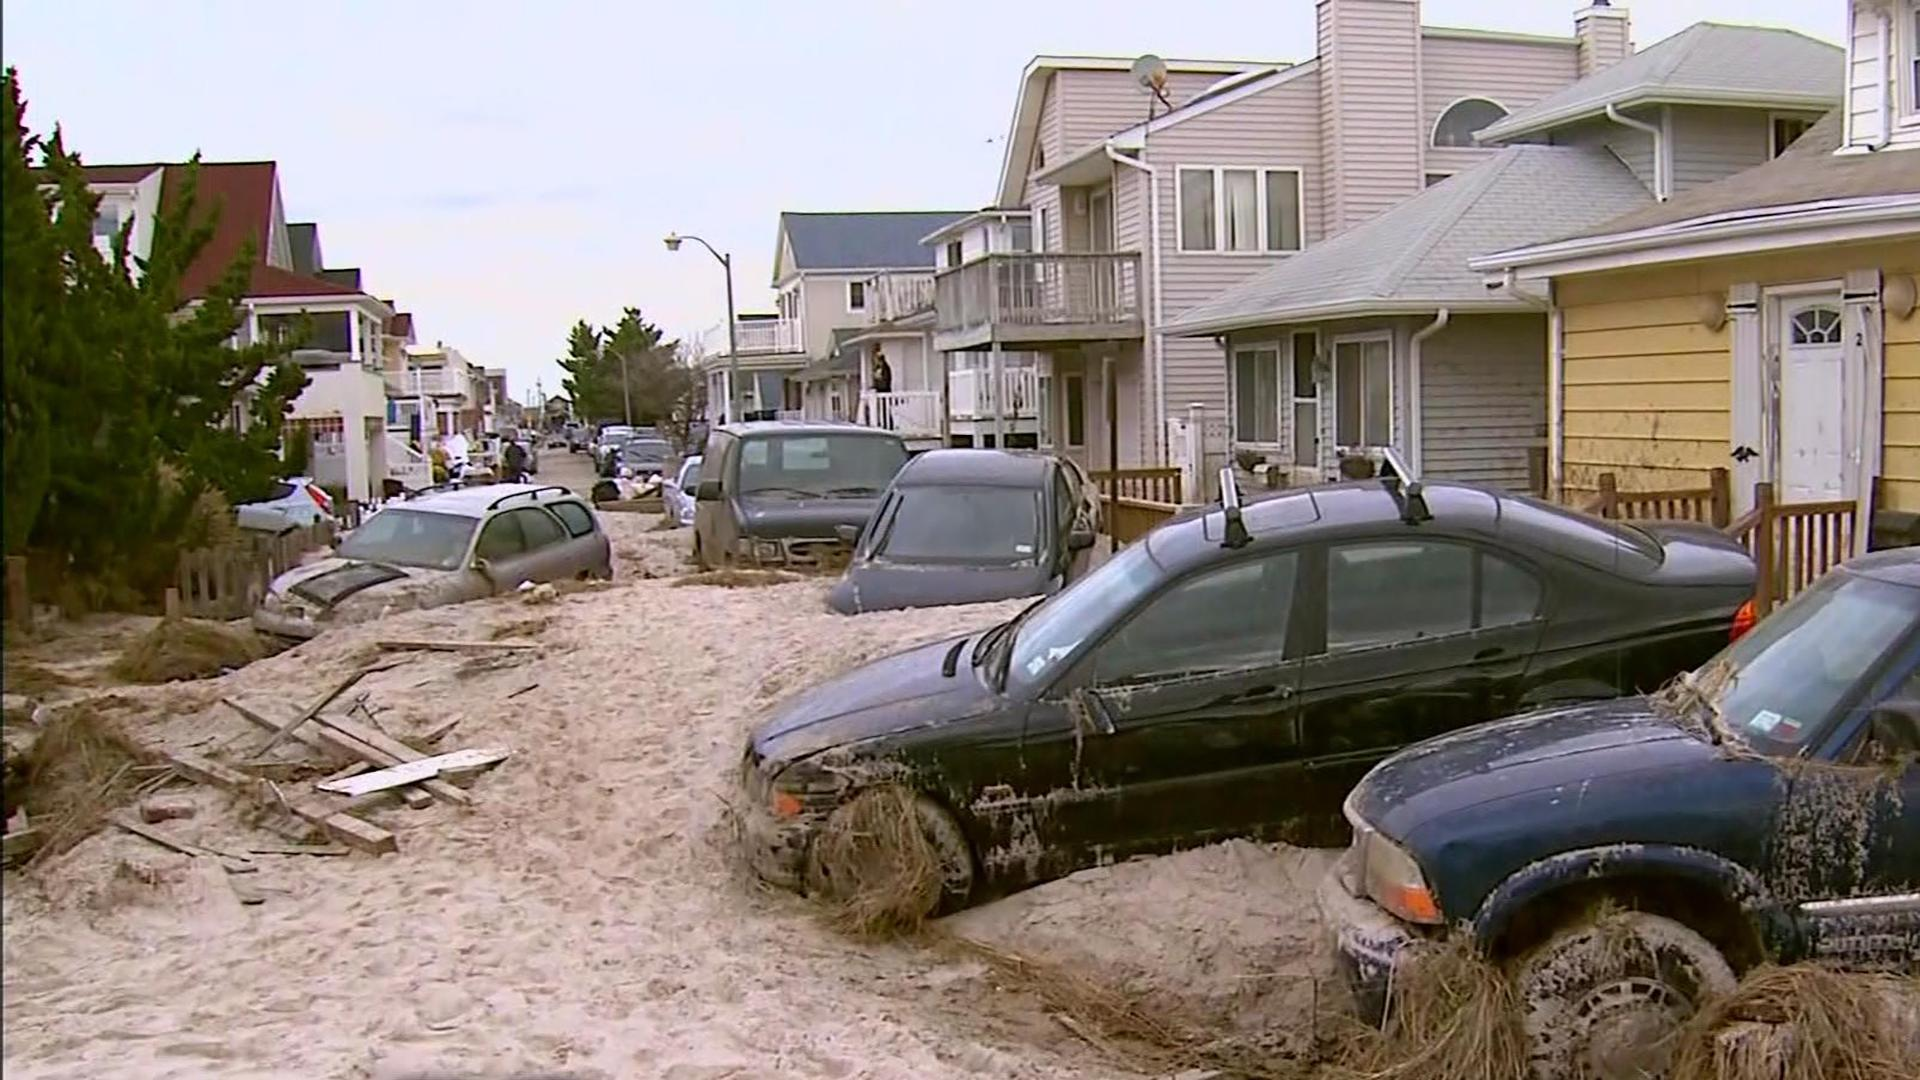 Senators call for hearing into fraudulent reports linked to Superstorm Sandy